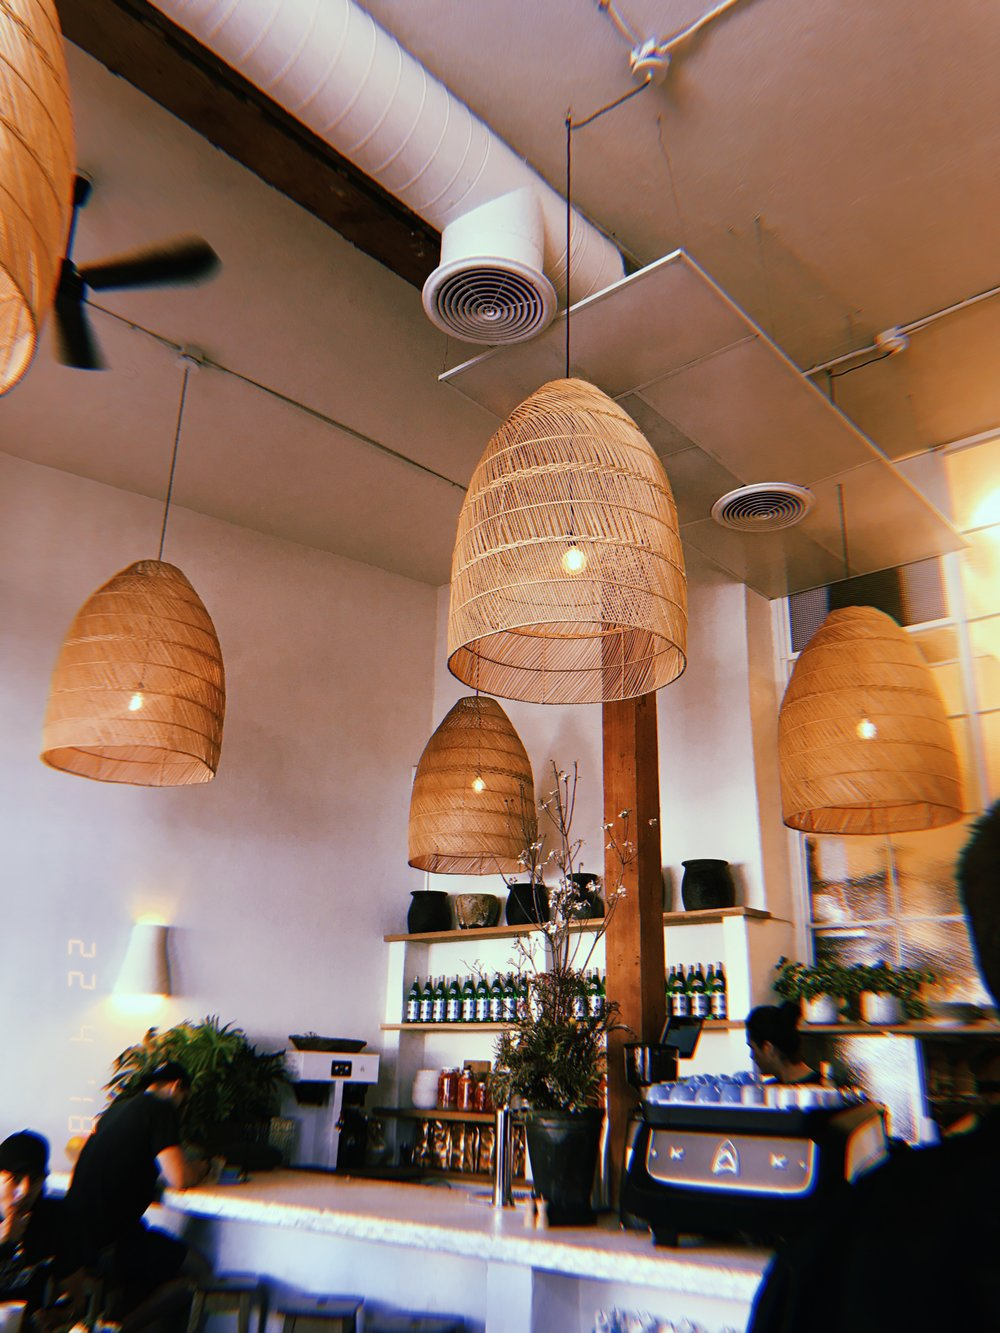 Grab a bite to eat at Great White - This cool neighbourhood cafe serves coastal california dishes & everything is delicious! A perfect spot to go for breakfast as well. Bare in mind that it does get a bit busy but the wait usually isn't that long!1604 Pacific Ave, Venice, CA 90291